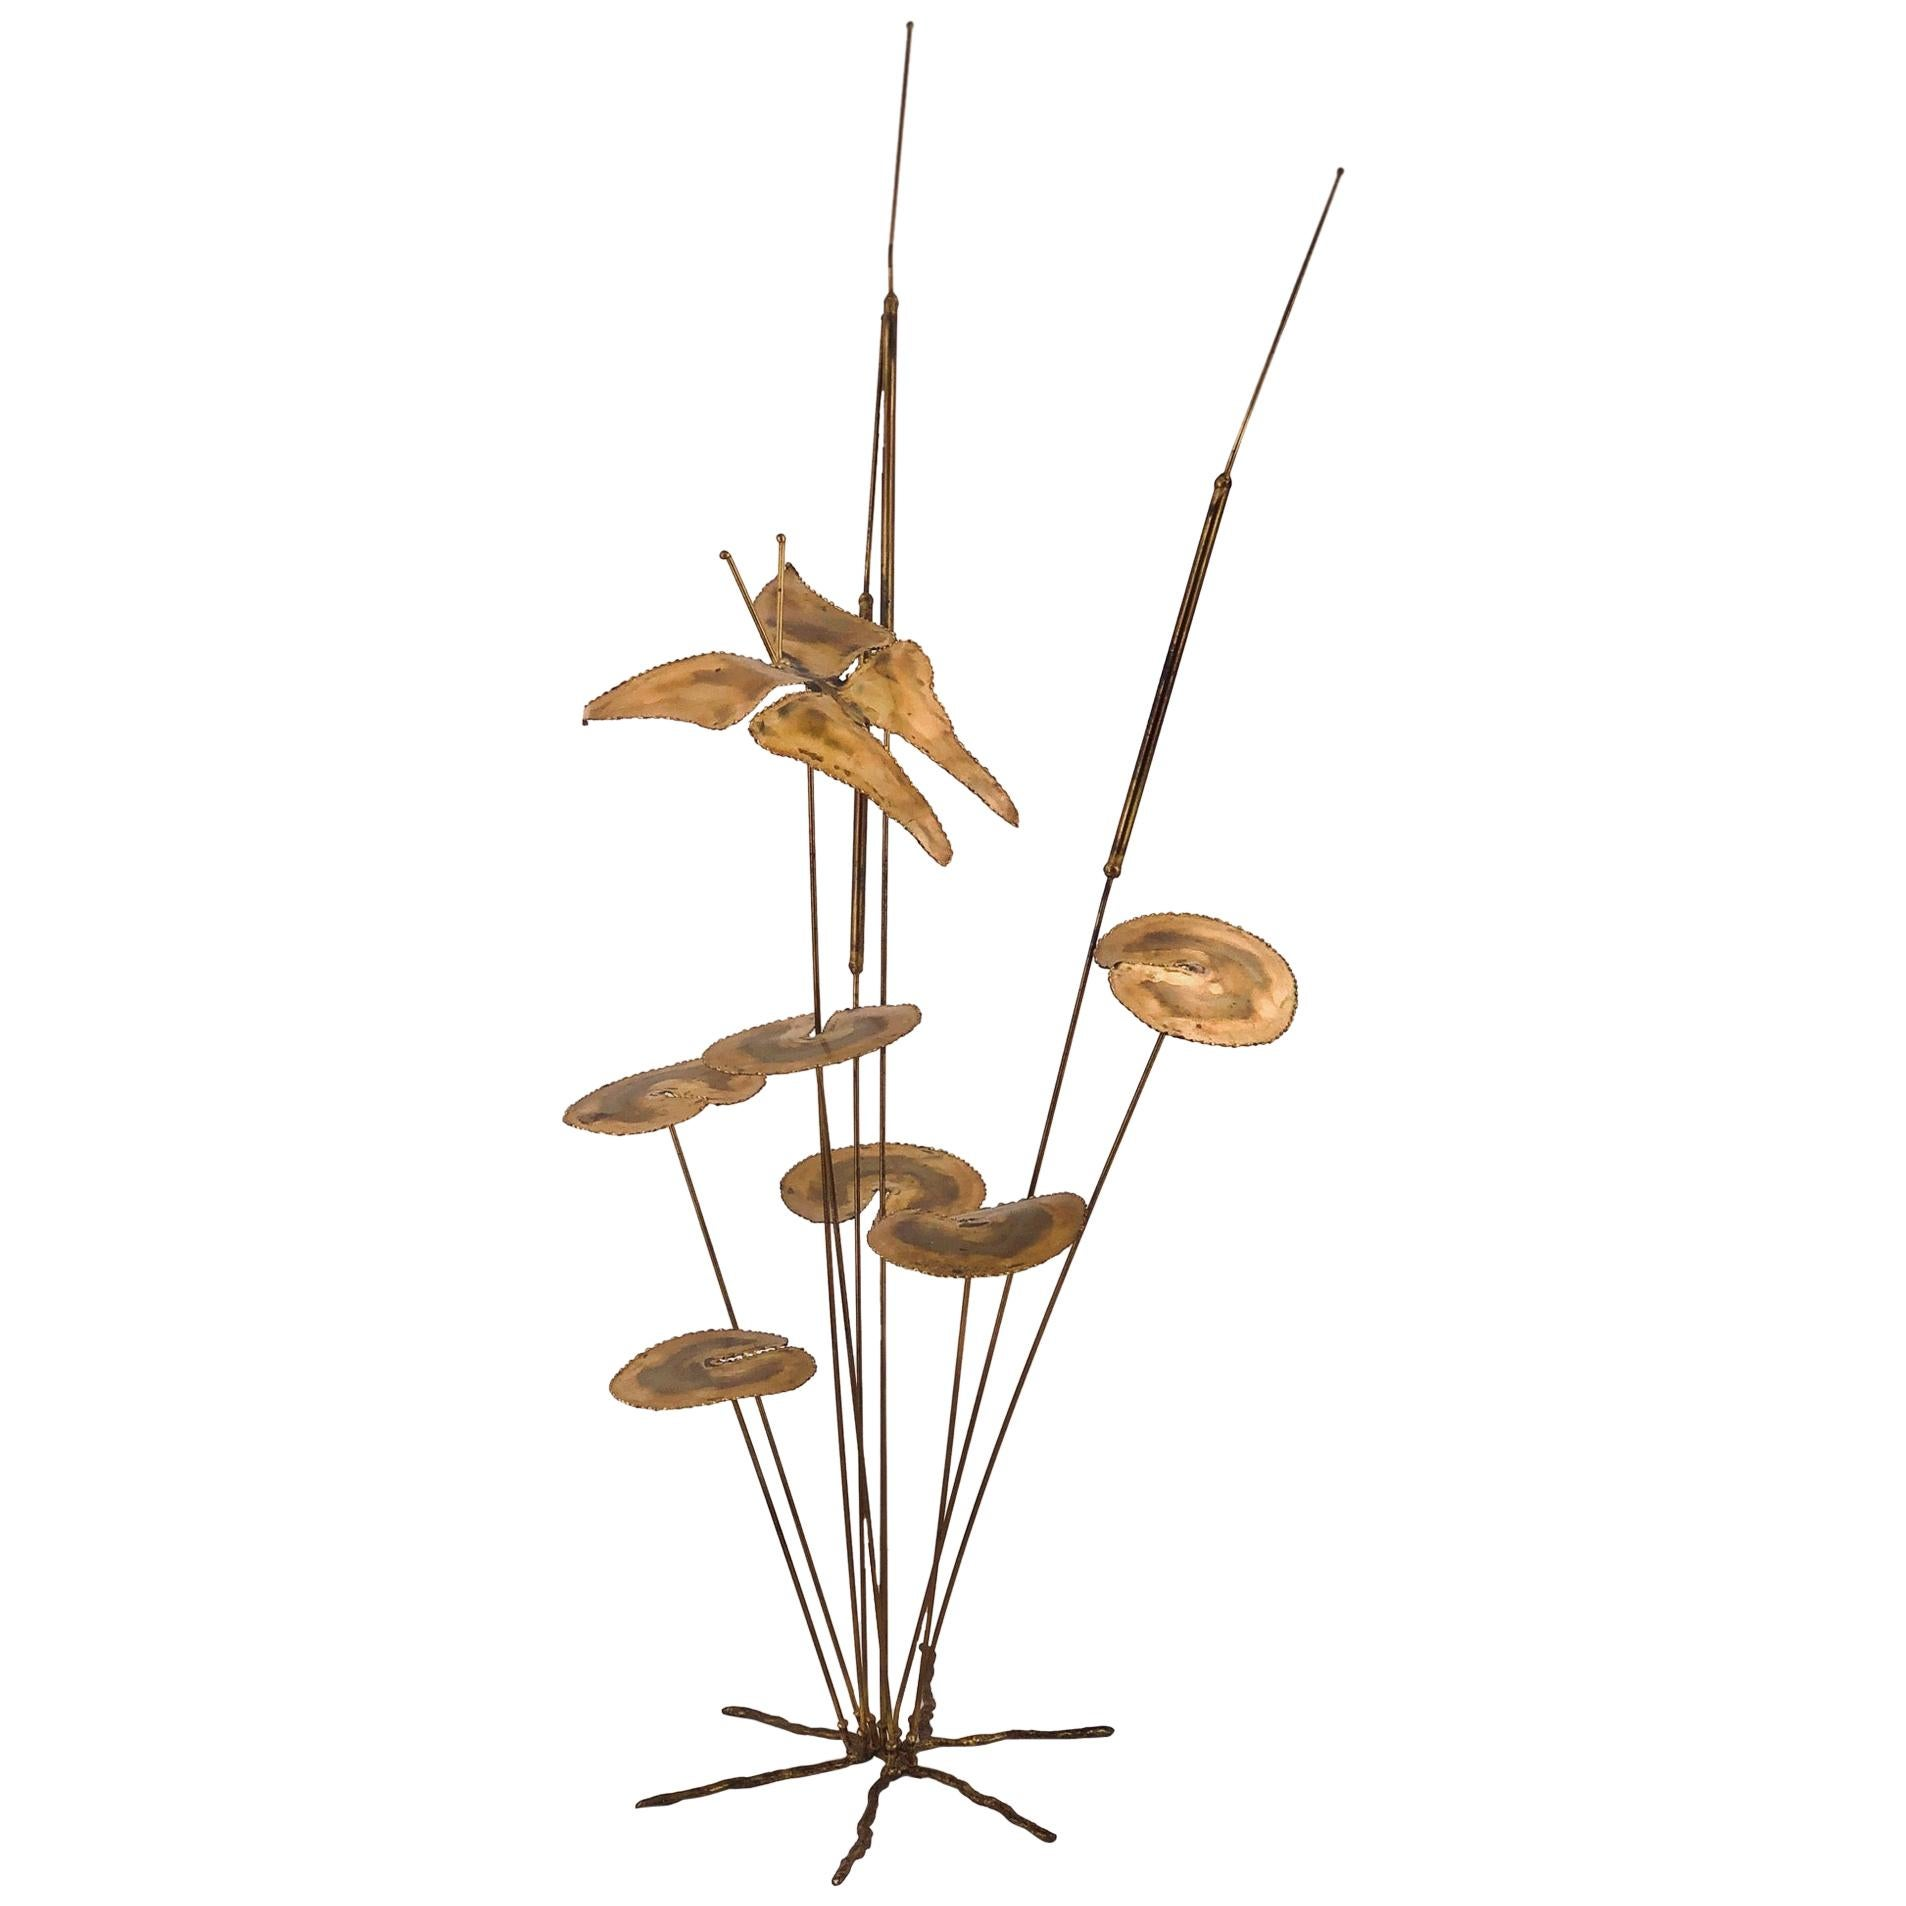 Whimsical Brass Sculpture in the Style of Curtis Jere